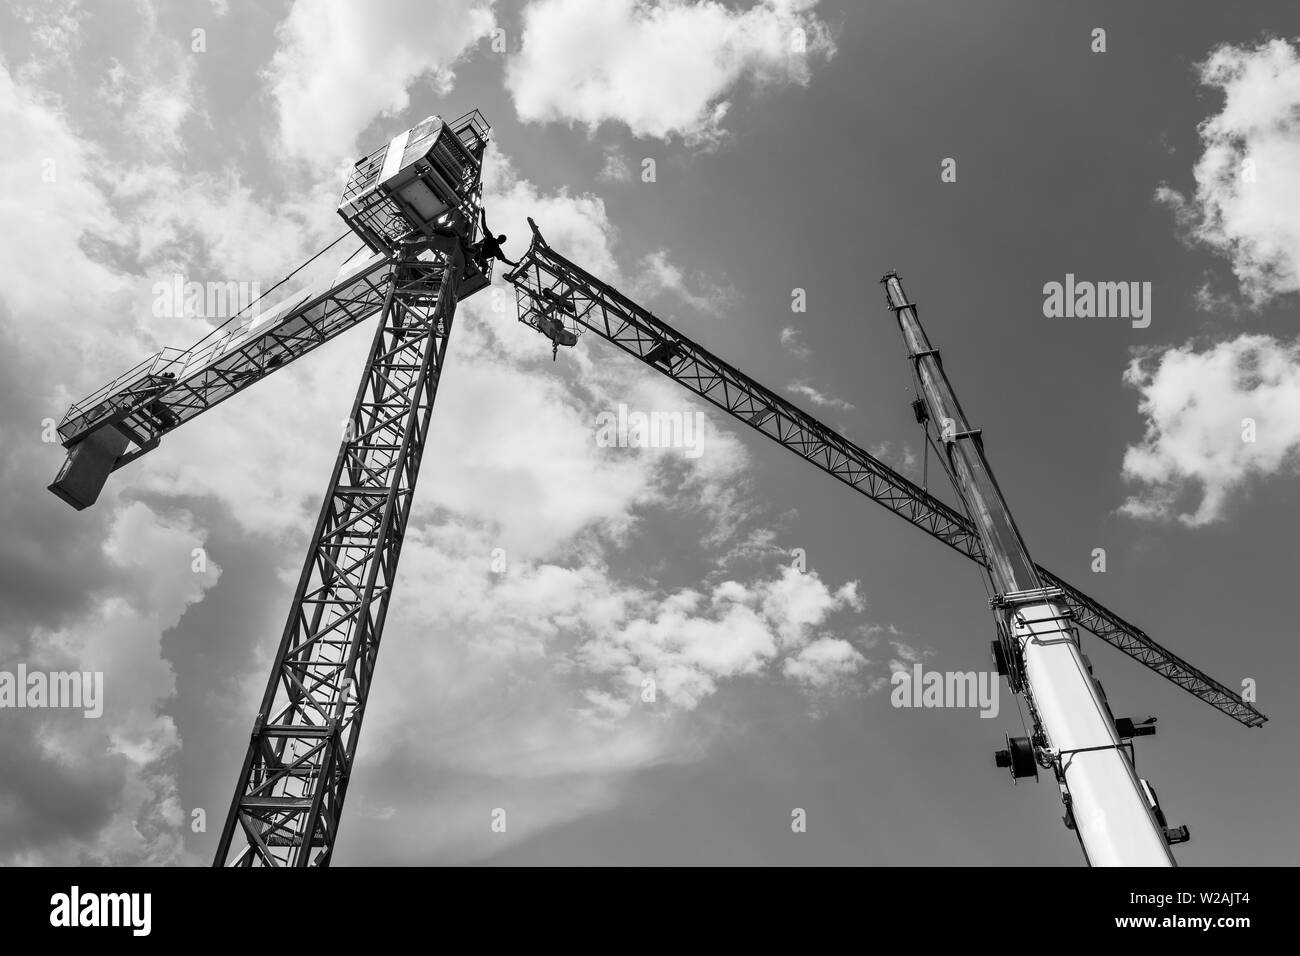 Tower crane installation. Black and white silhouette. Work at heights. Artistic construction background. Telescopic boom of lifting device. Cloudy sky. - Stock Image